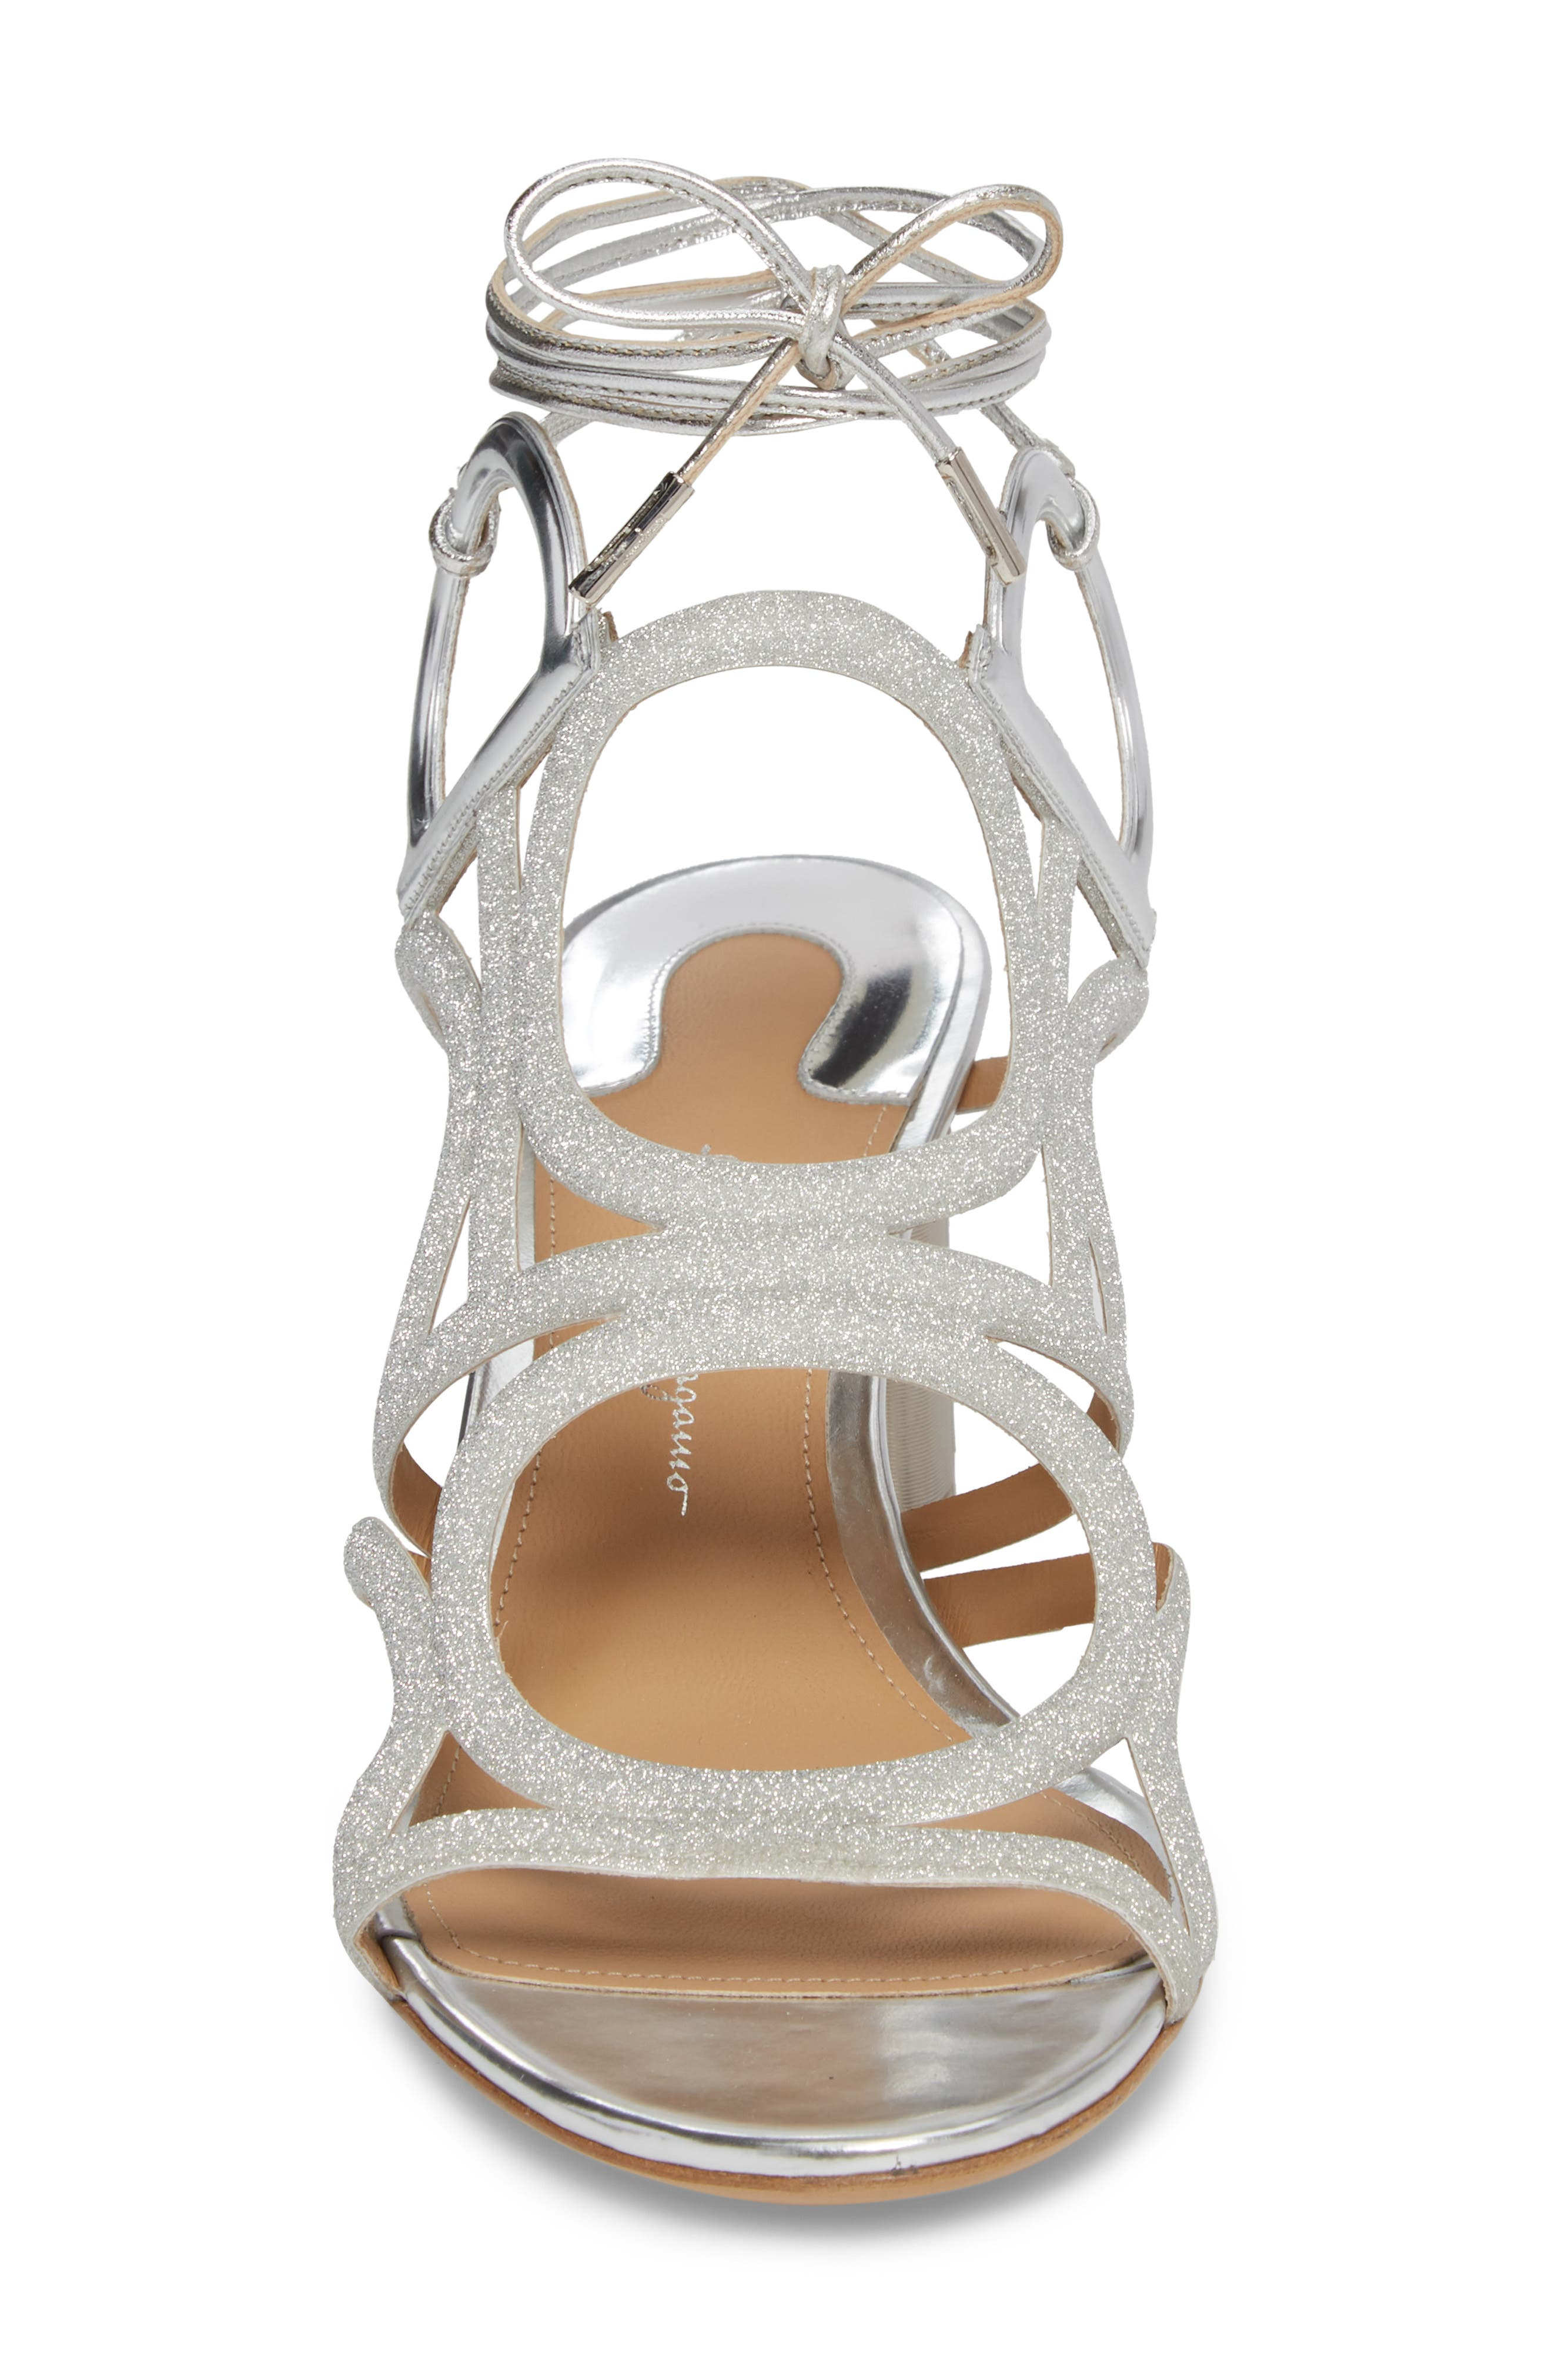 Vinci Lace-Up Block Heel Sandal,                             Alternate thumbnail 4, color,                             SILVER